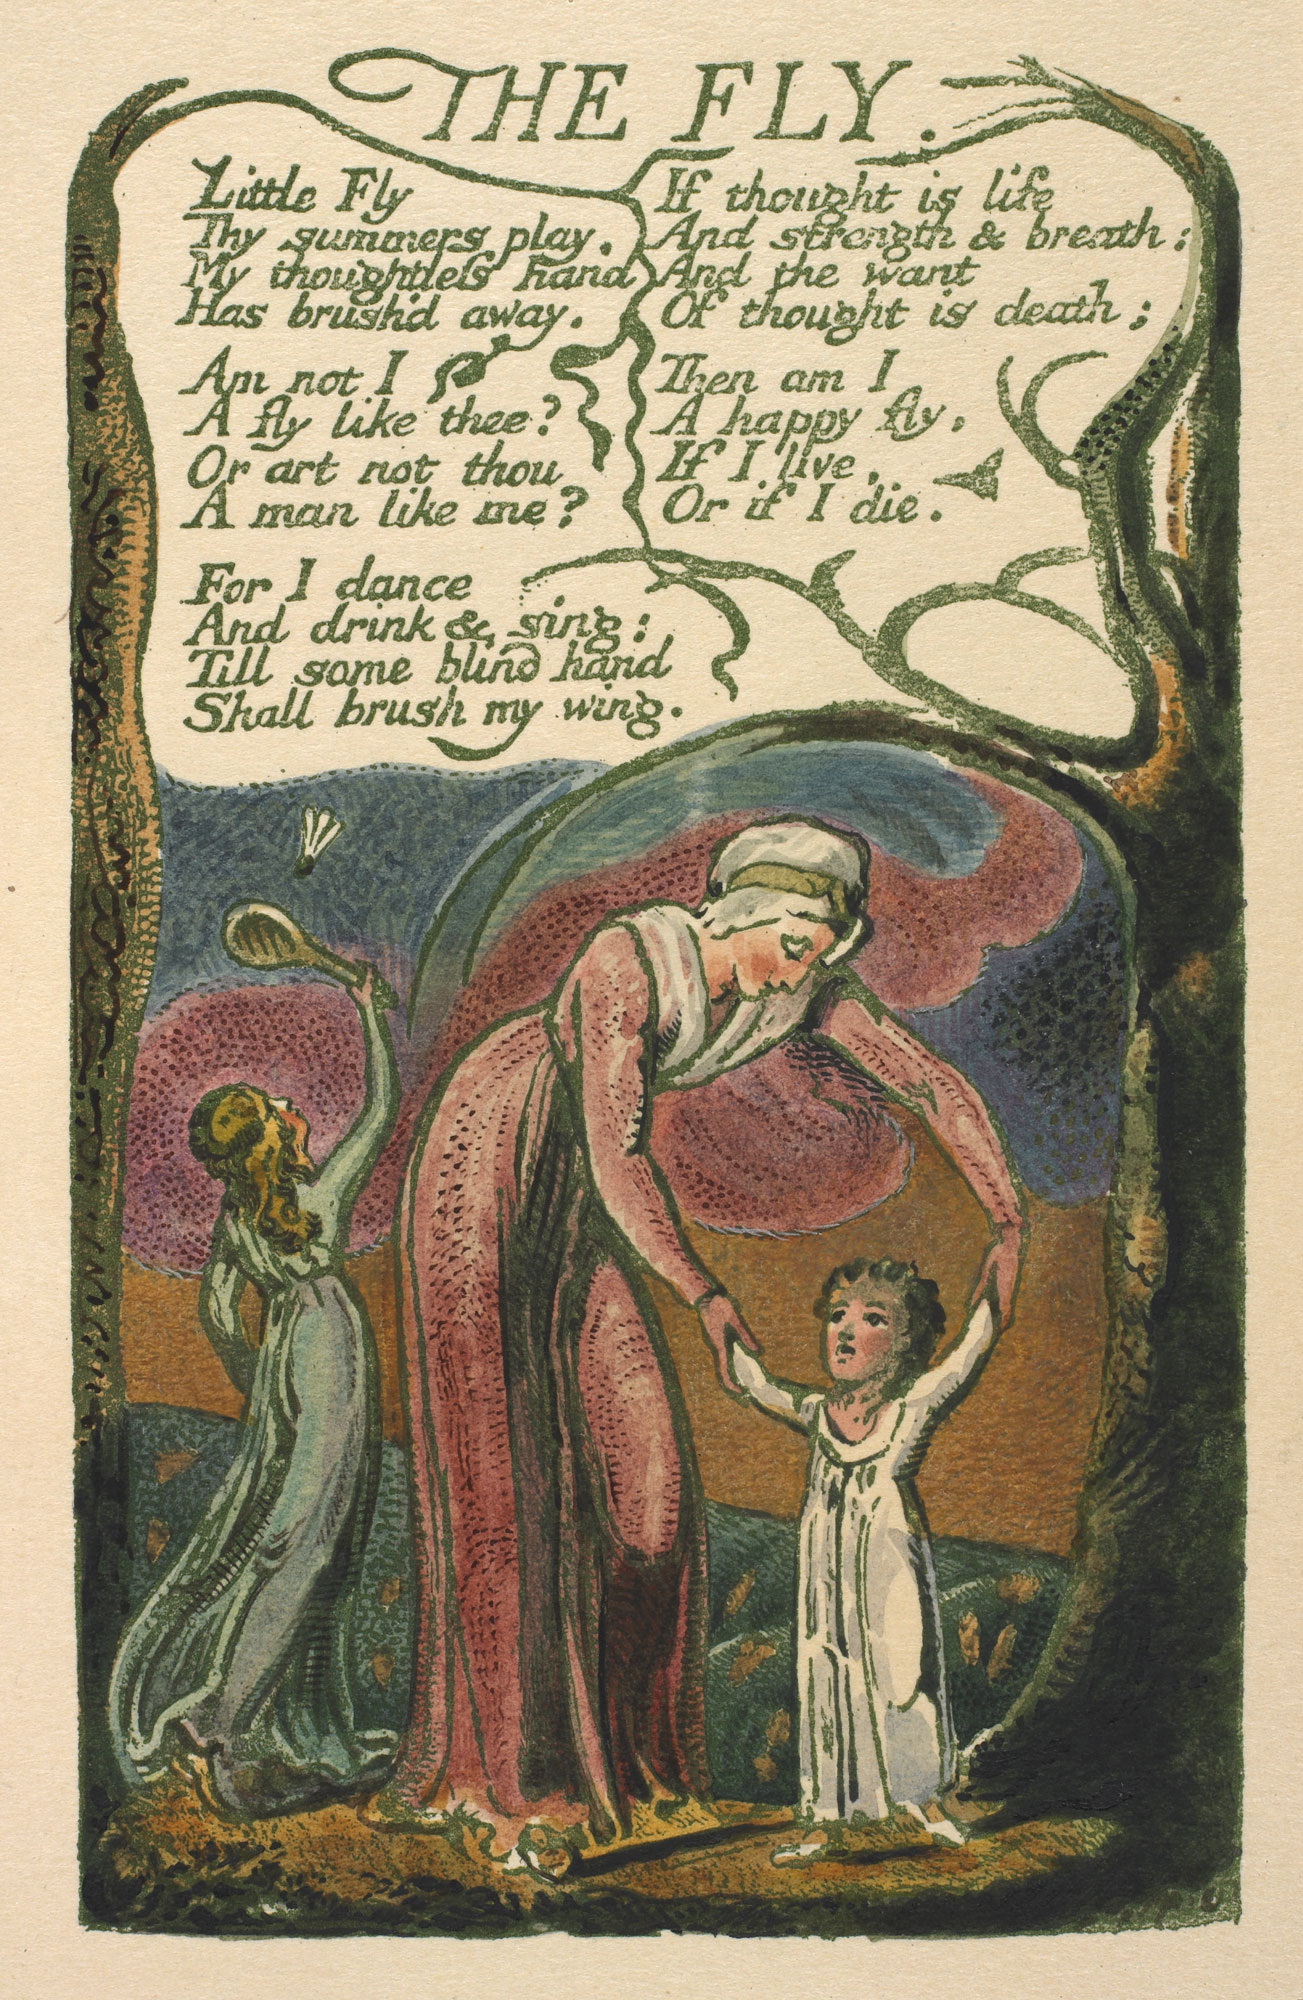 William Blake's Songs of Innocence and Experience [page: 40]